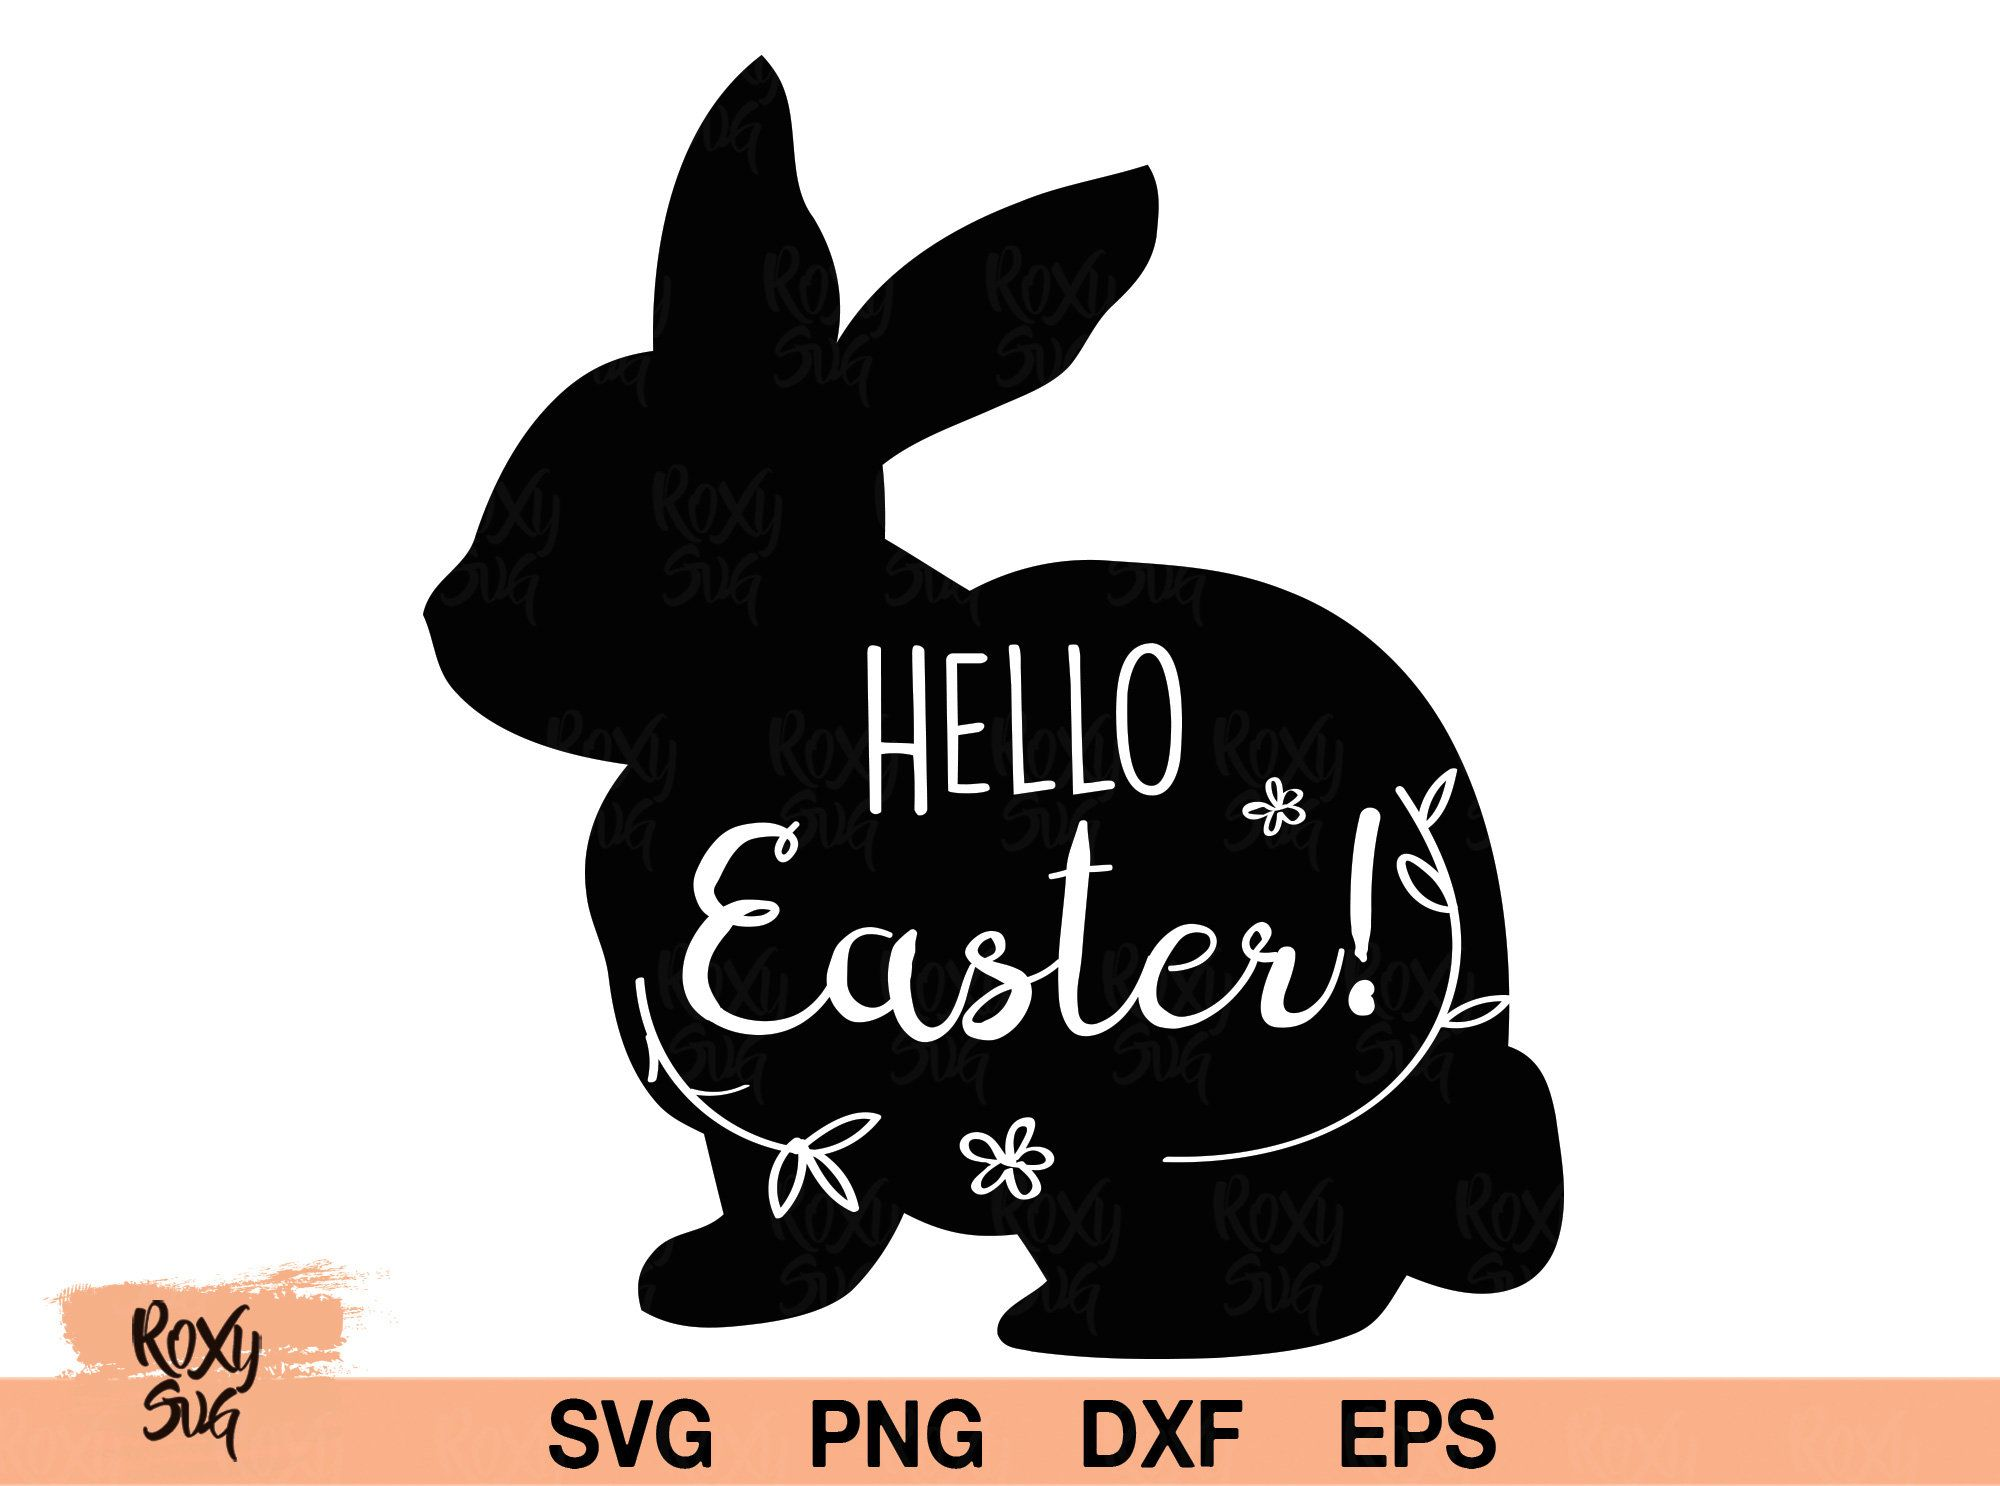 Bunny Ears with Yellow Flowers Rabbit Cricut Cut File Silhouette dxf SVG PNG Clip Art Download eps Holidays Happy Easter Spring